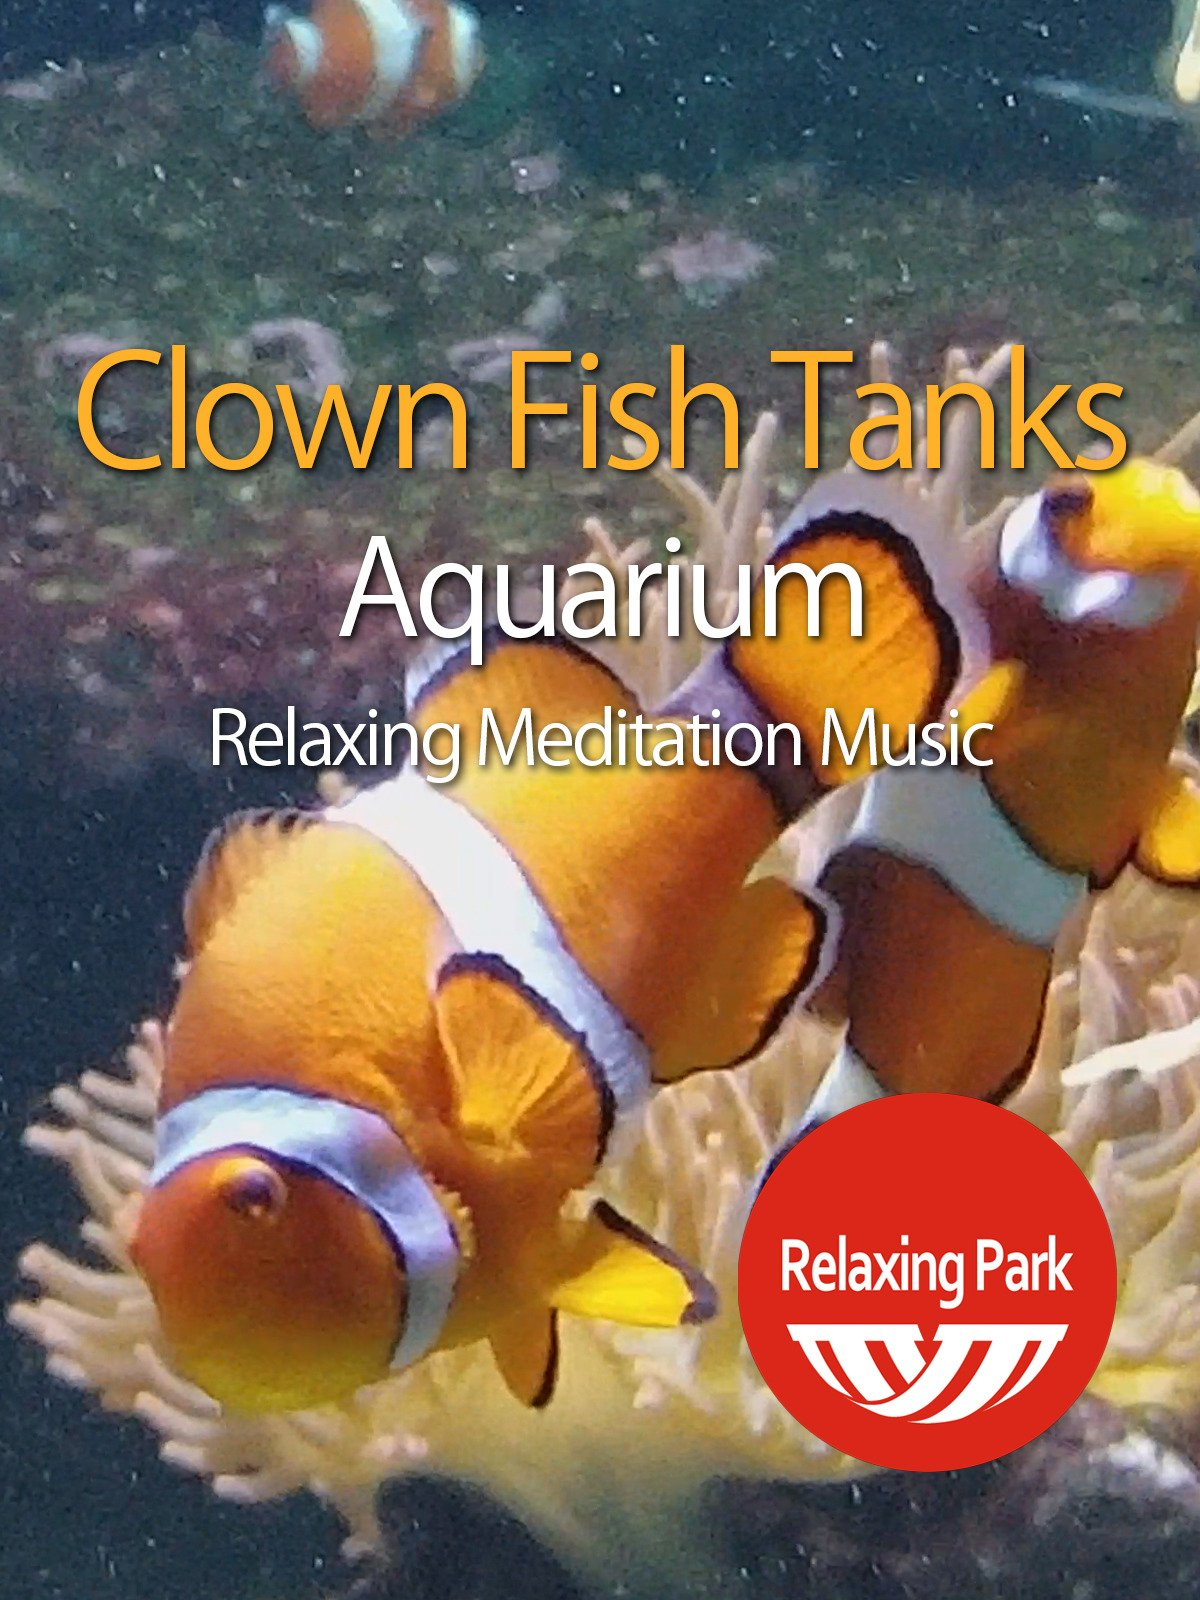 Clown Fish Tanks Aquarium with Relaxing Meditation Music